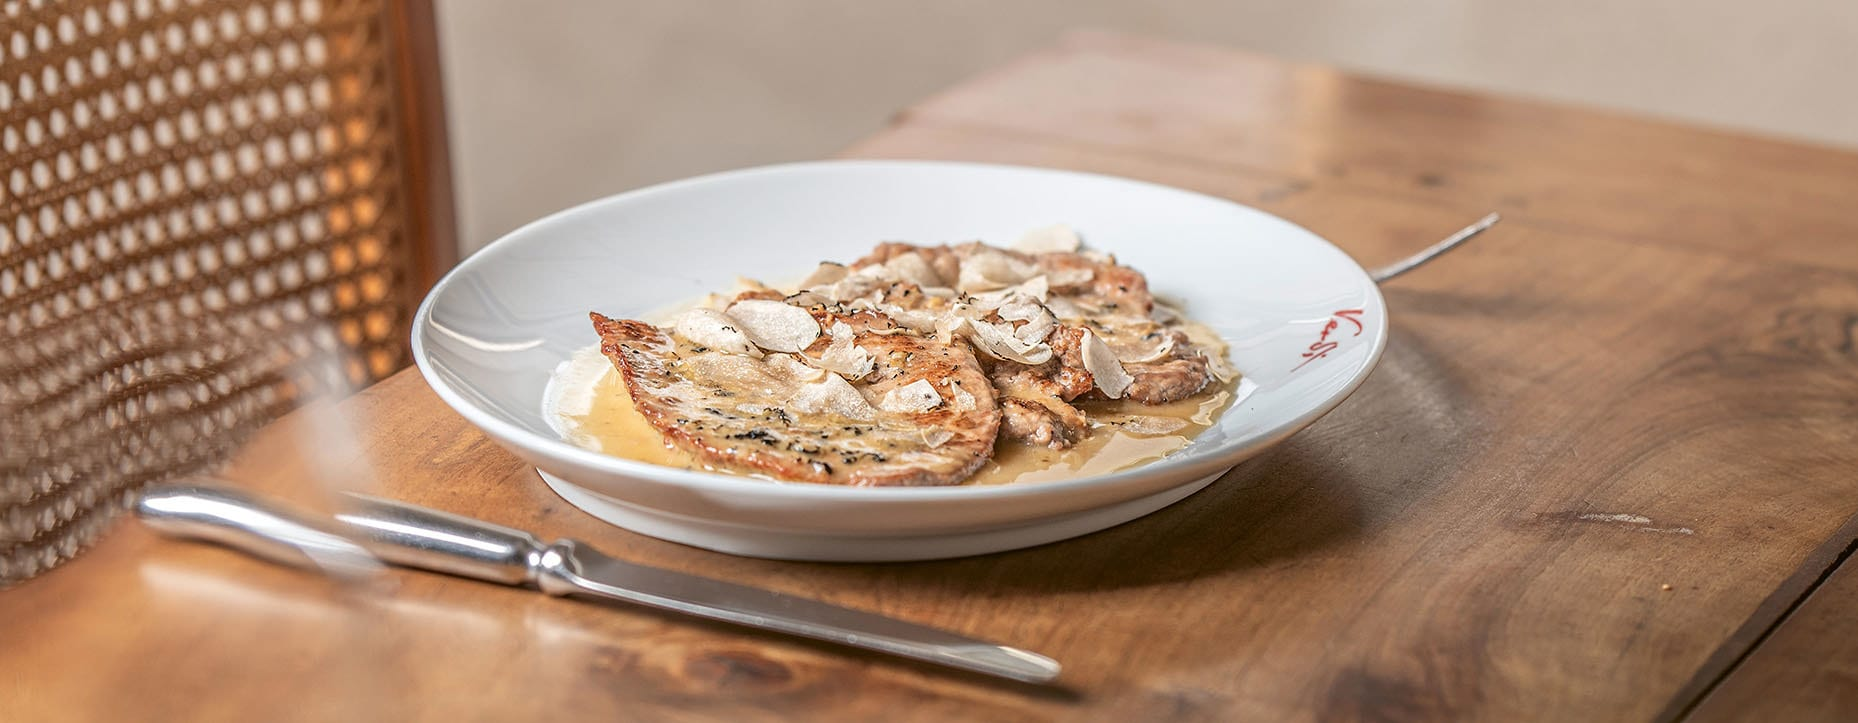 Scaloppine di vitello con tartufo